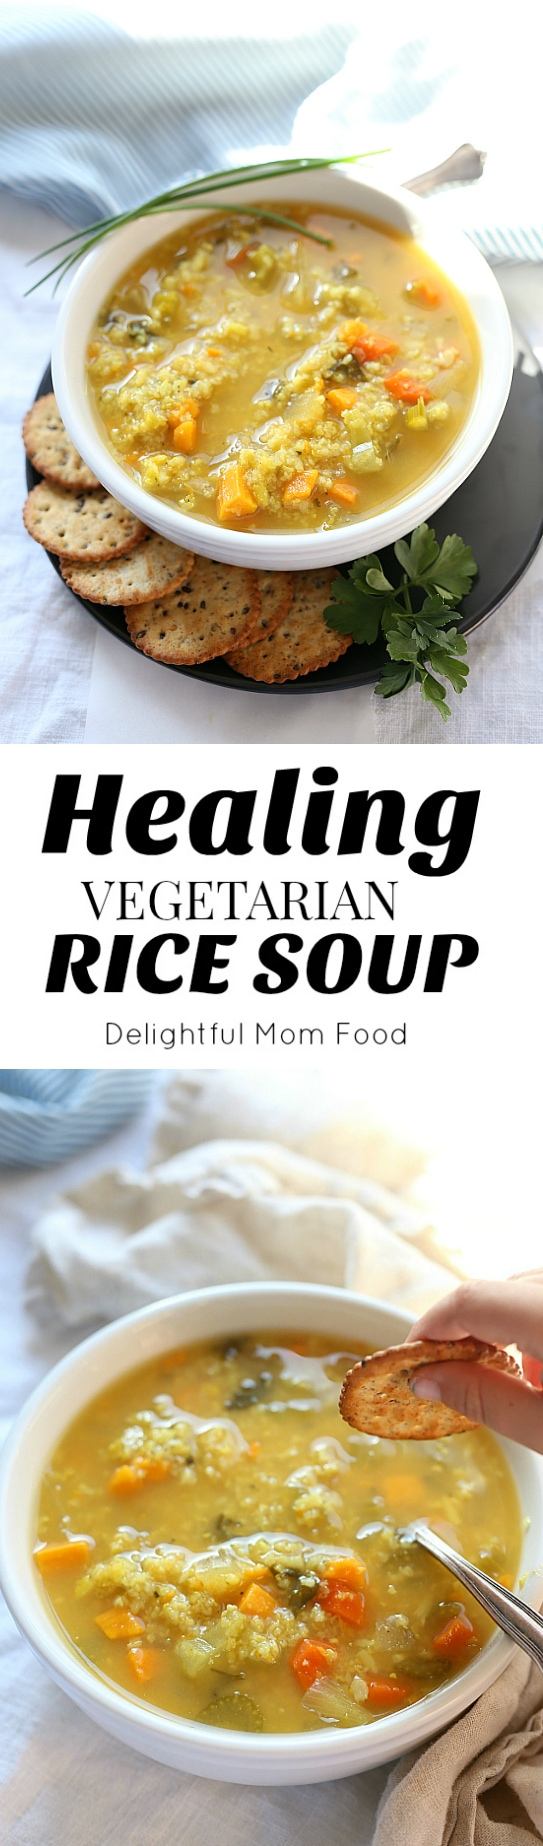 This hearty vegetarian crock pot rice soup recipe is the perfect food-for-your-soul! Made with vegetable broth or if you are not a vegetarian add chicken for added protein! Delightful Mom Food #rice #soup #recipe #slowcooker #easy #healthy #vegetarian #vegetable